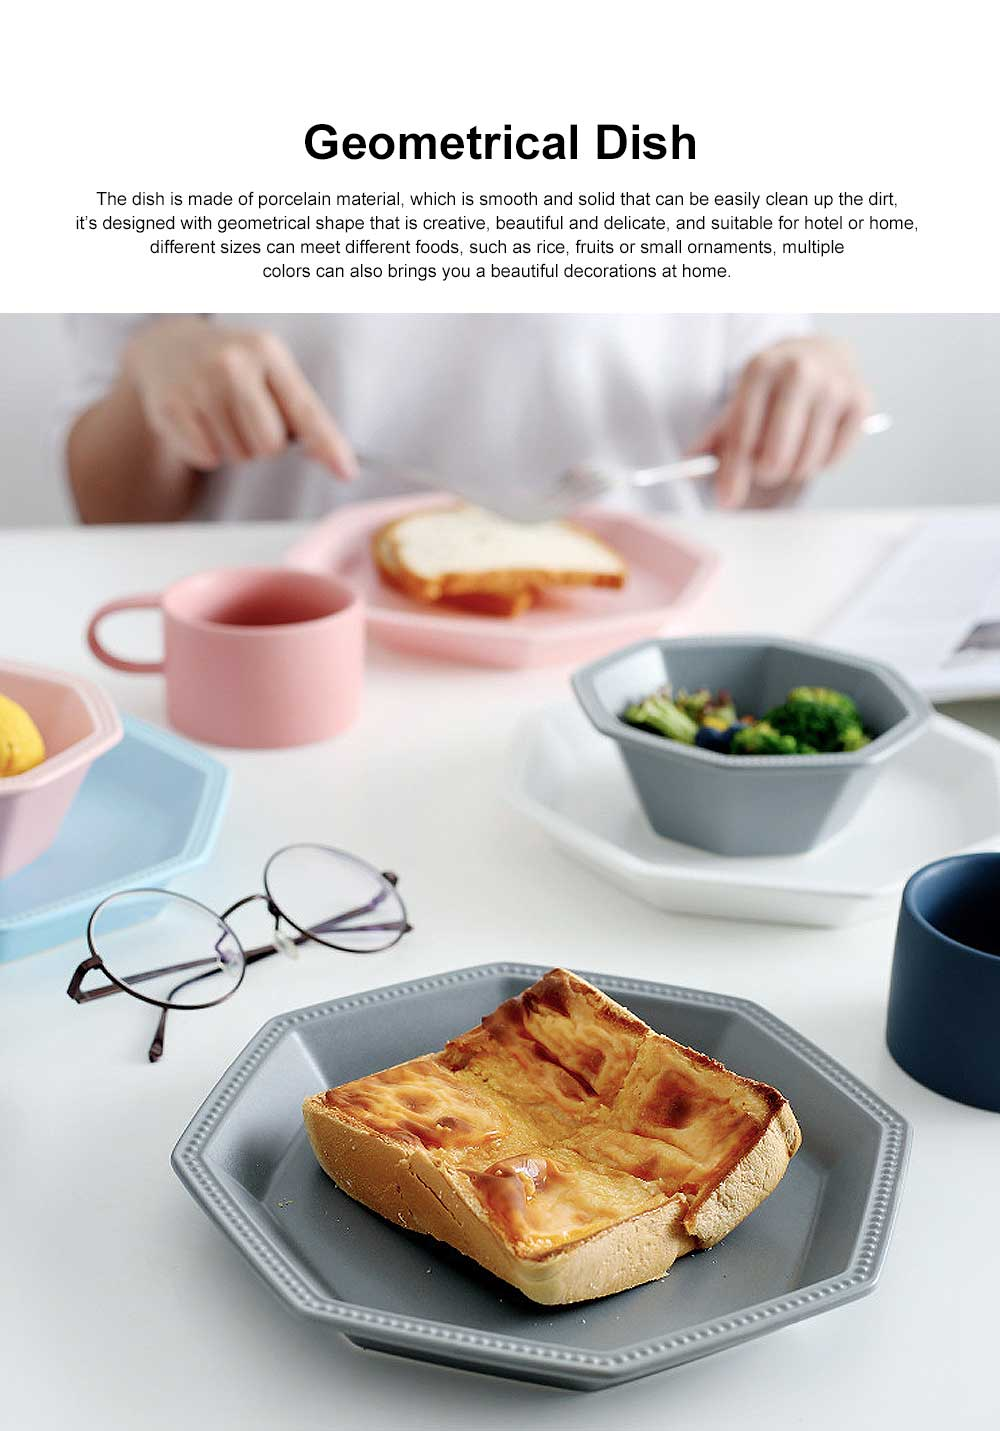 Geometrical Dish Porcelain Material Tray for Home Hotel Foods Hollow-ware Elegant Plate 0